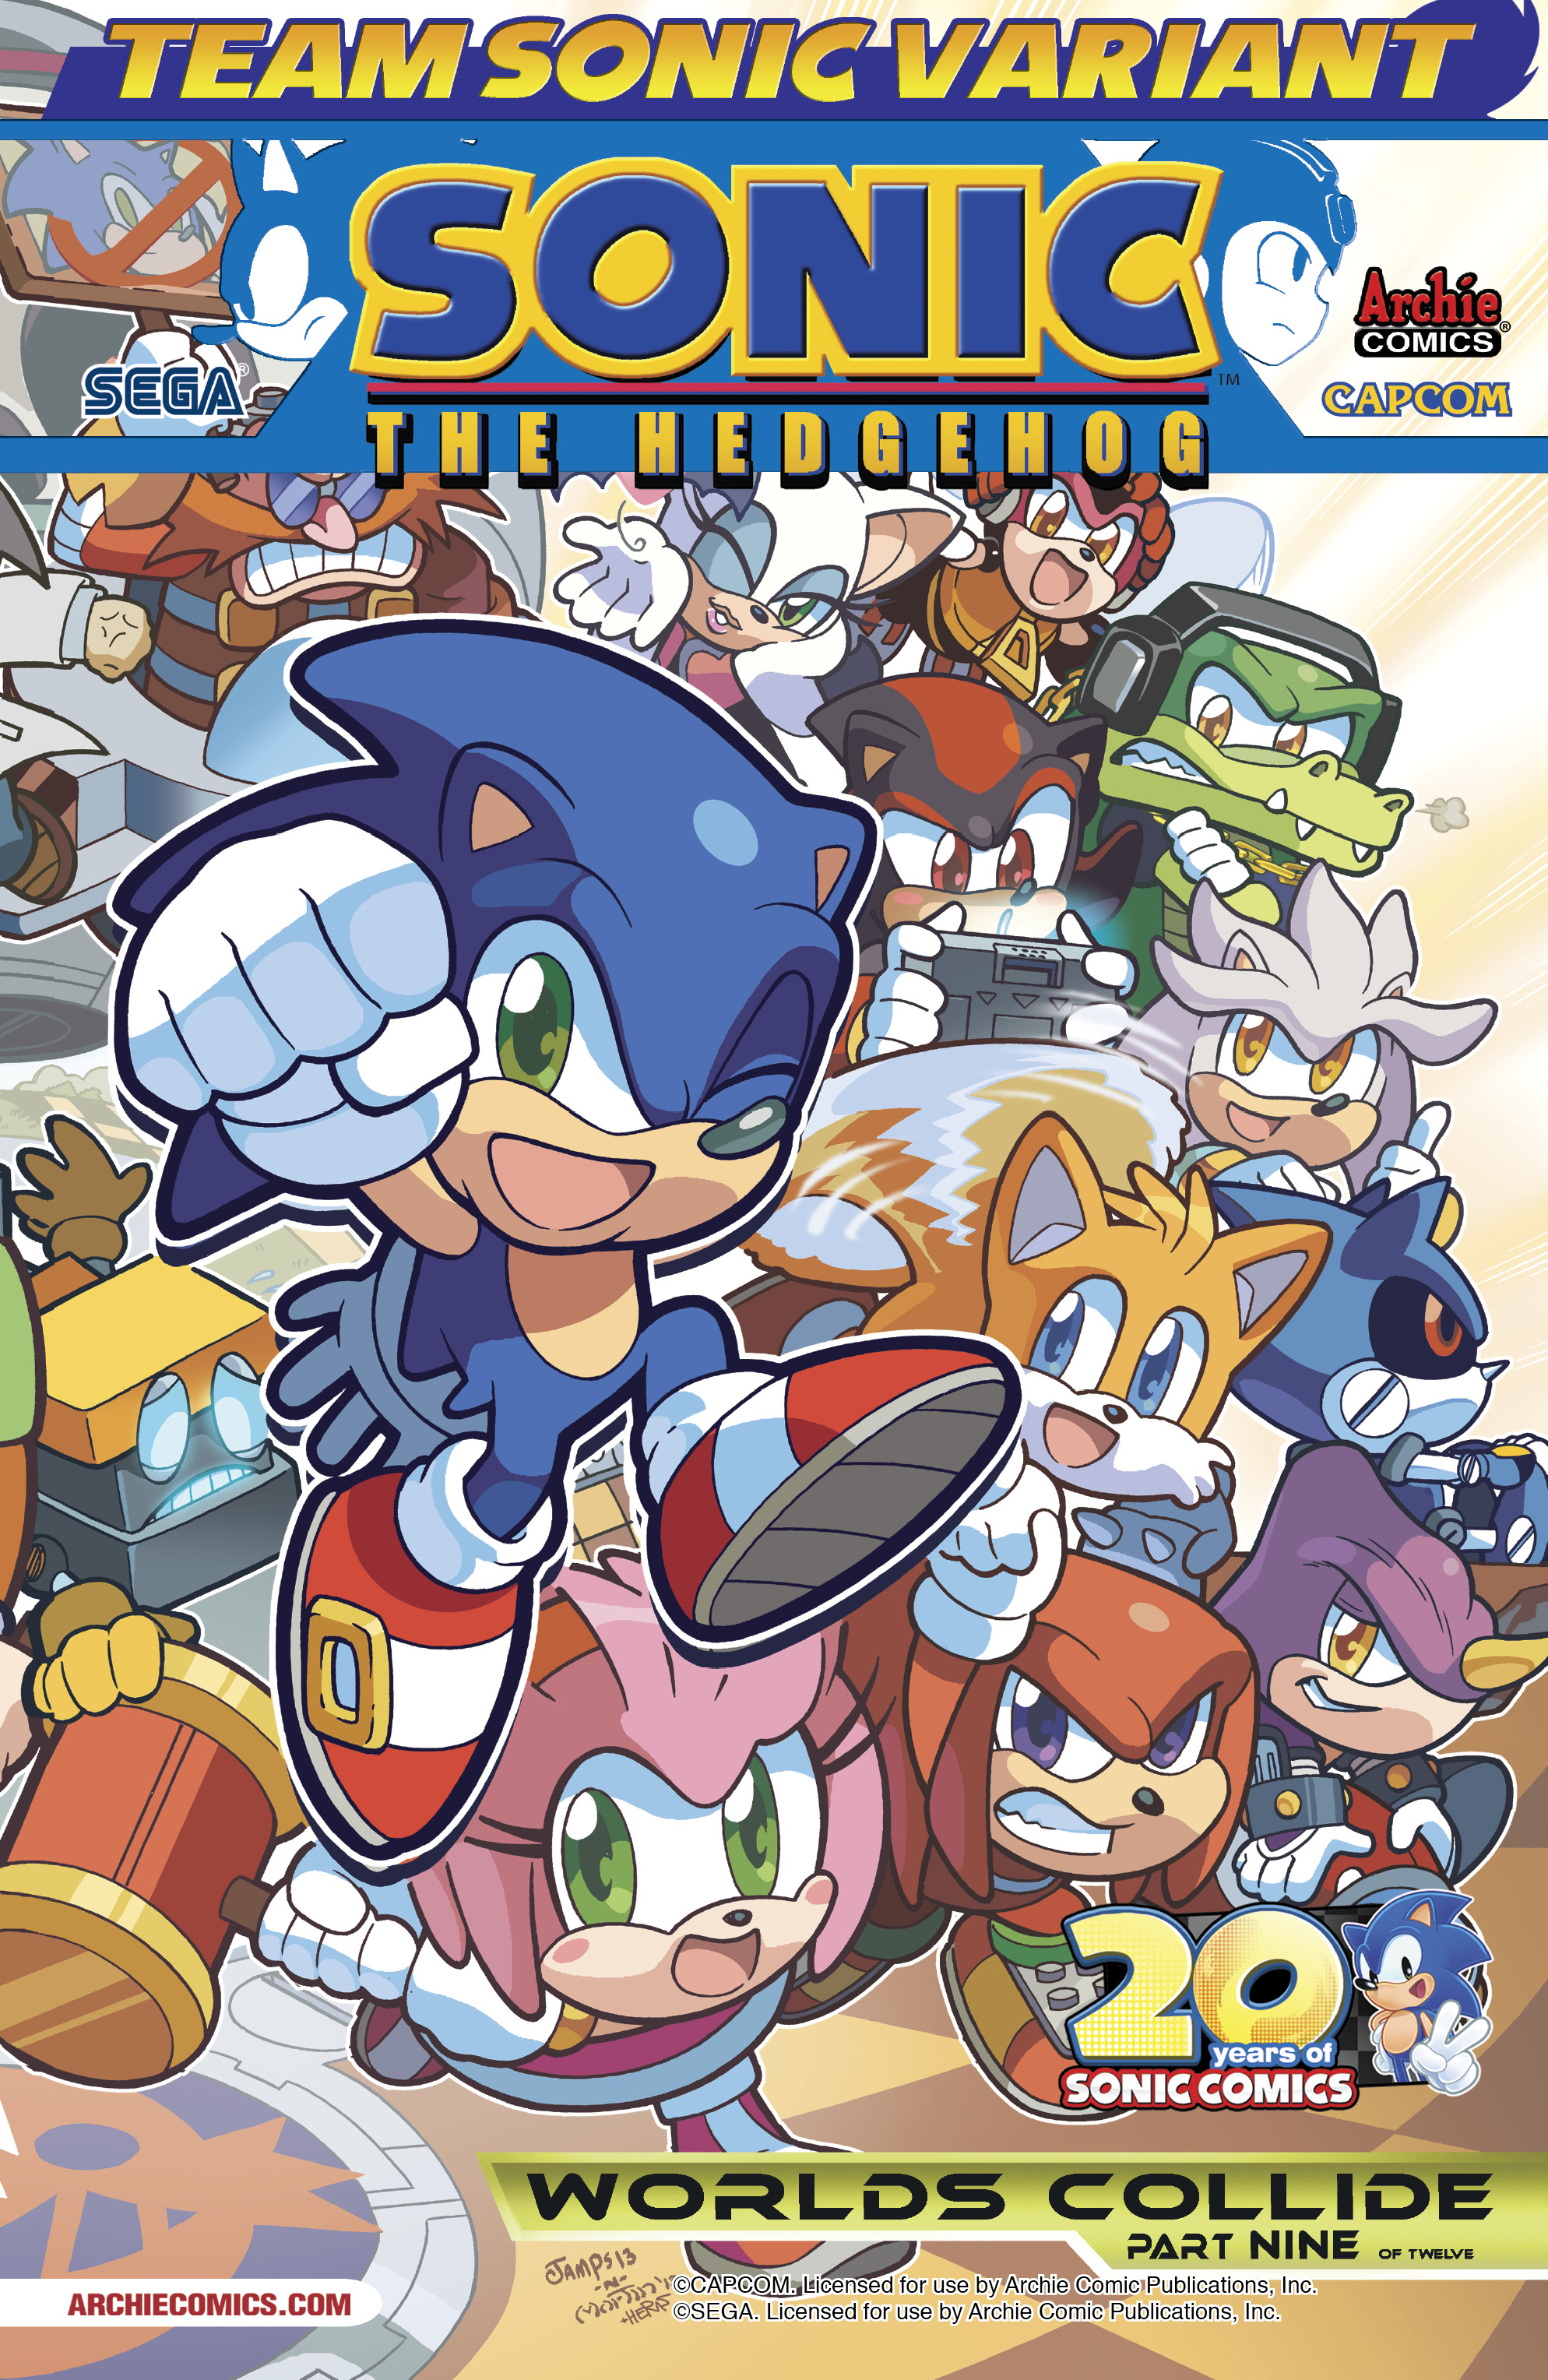 D Aww Sonic And Mega Man Chibis Adorn These Comic Covers